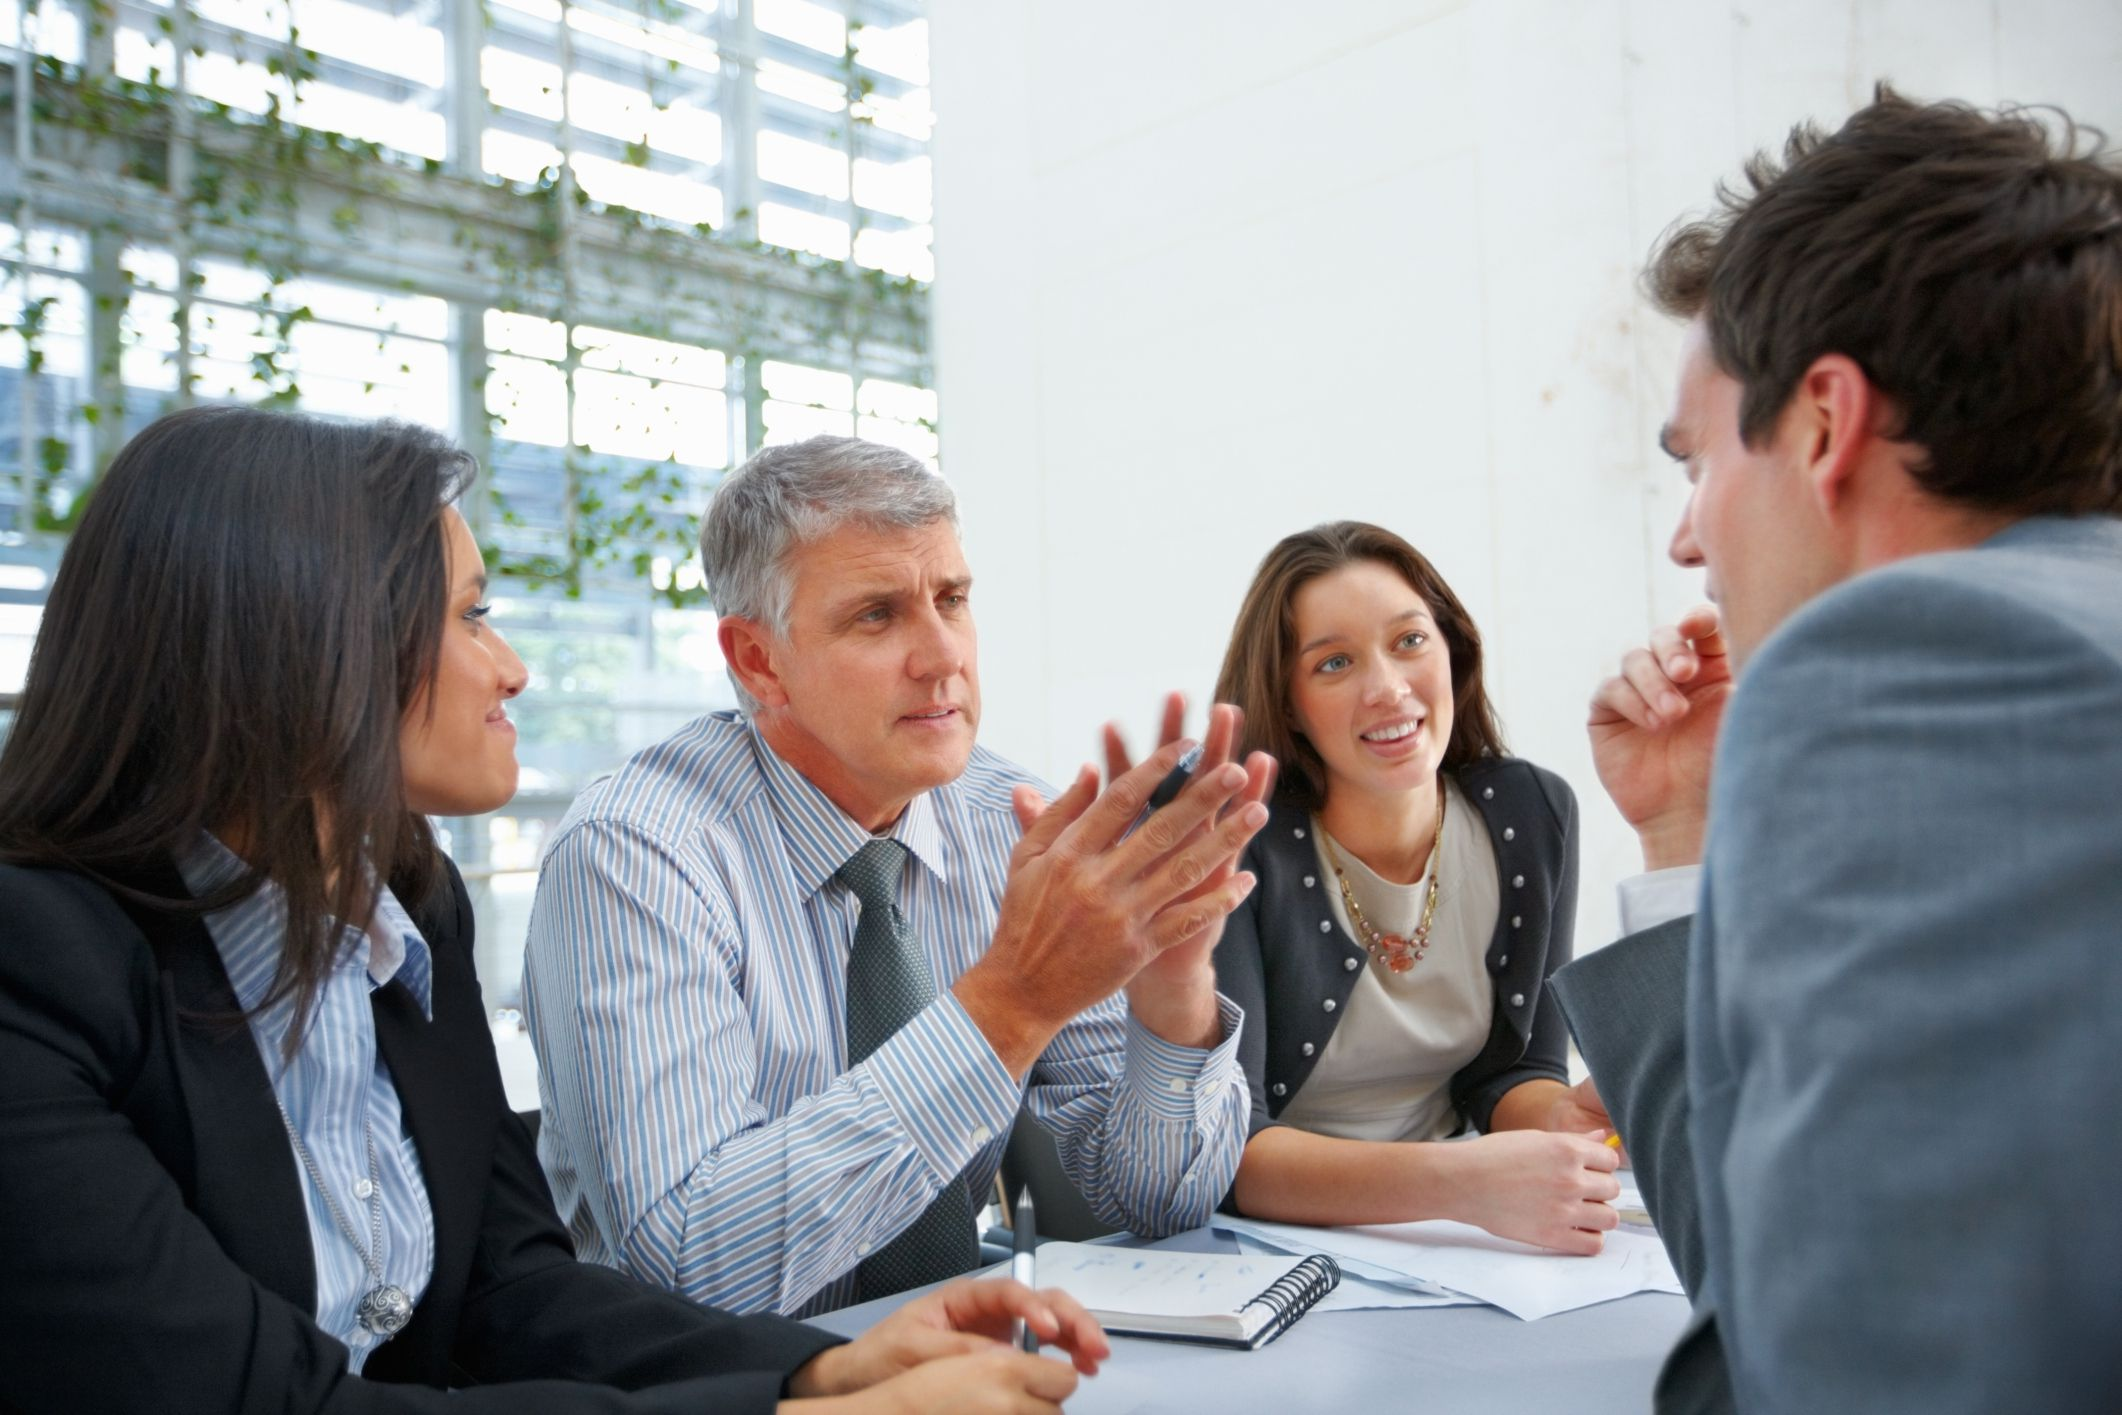 heres what you need to listen for in applicant answers to interview questions about cultural fit - Management Interview